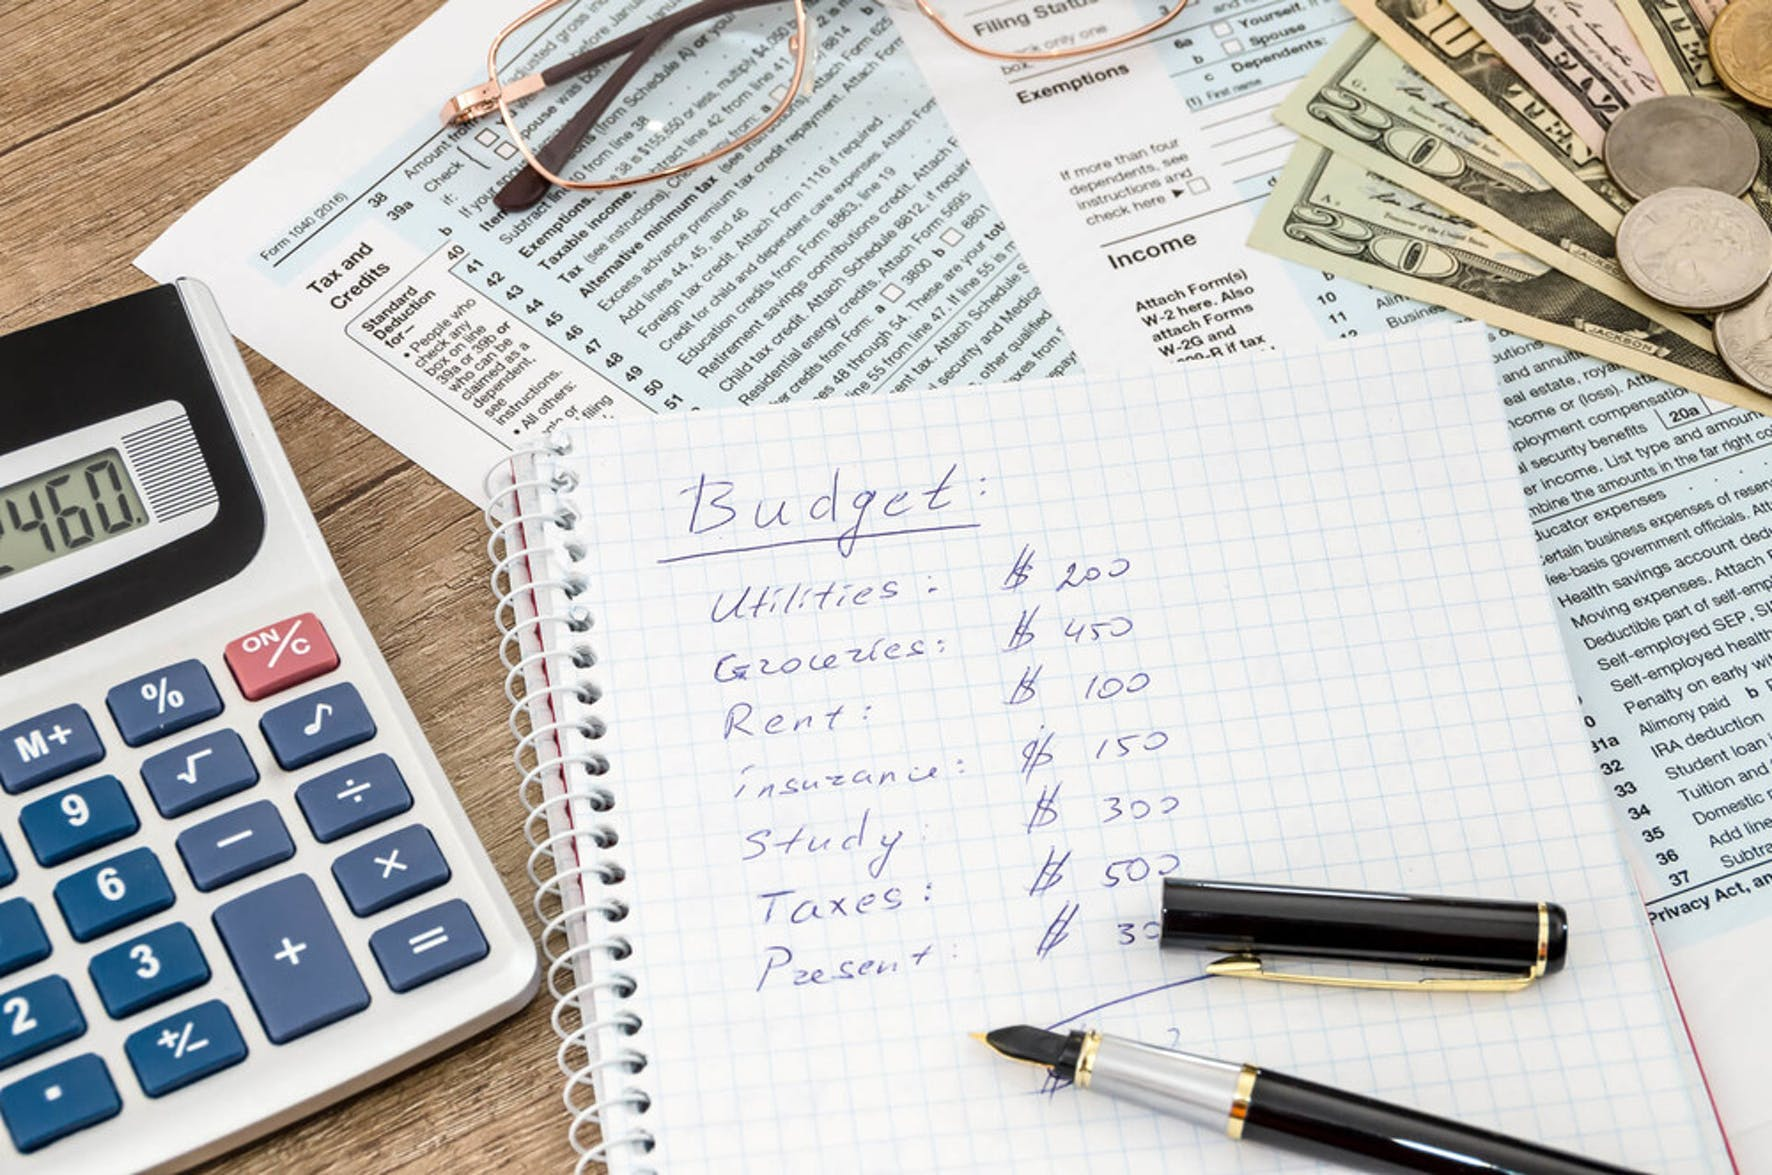 In order to reduce financial stress, you need to create a budget